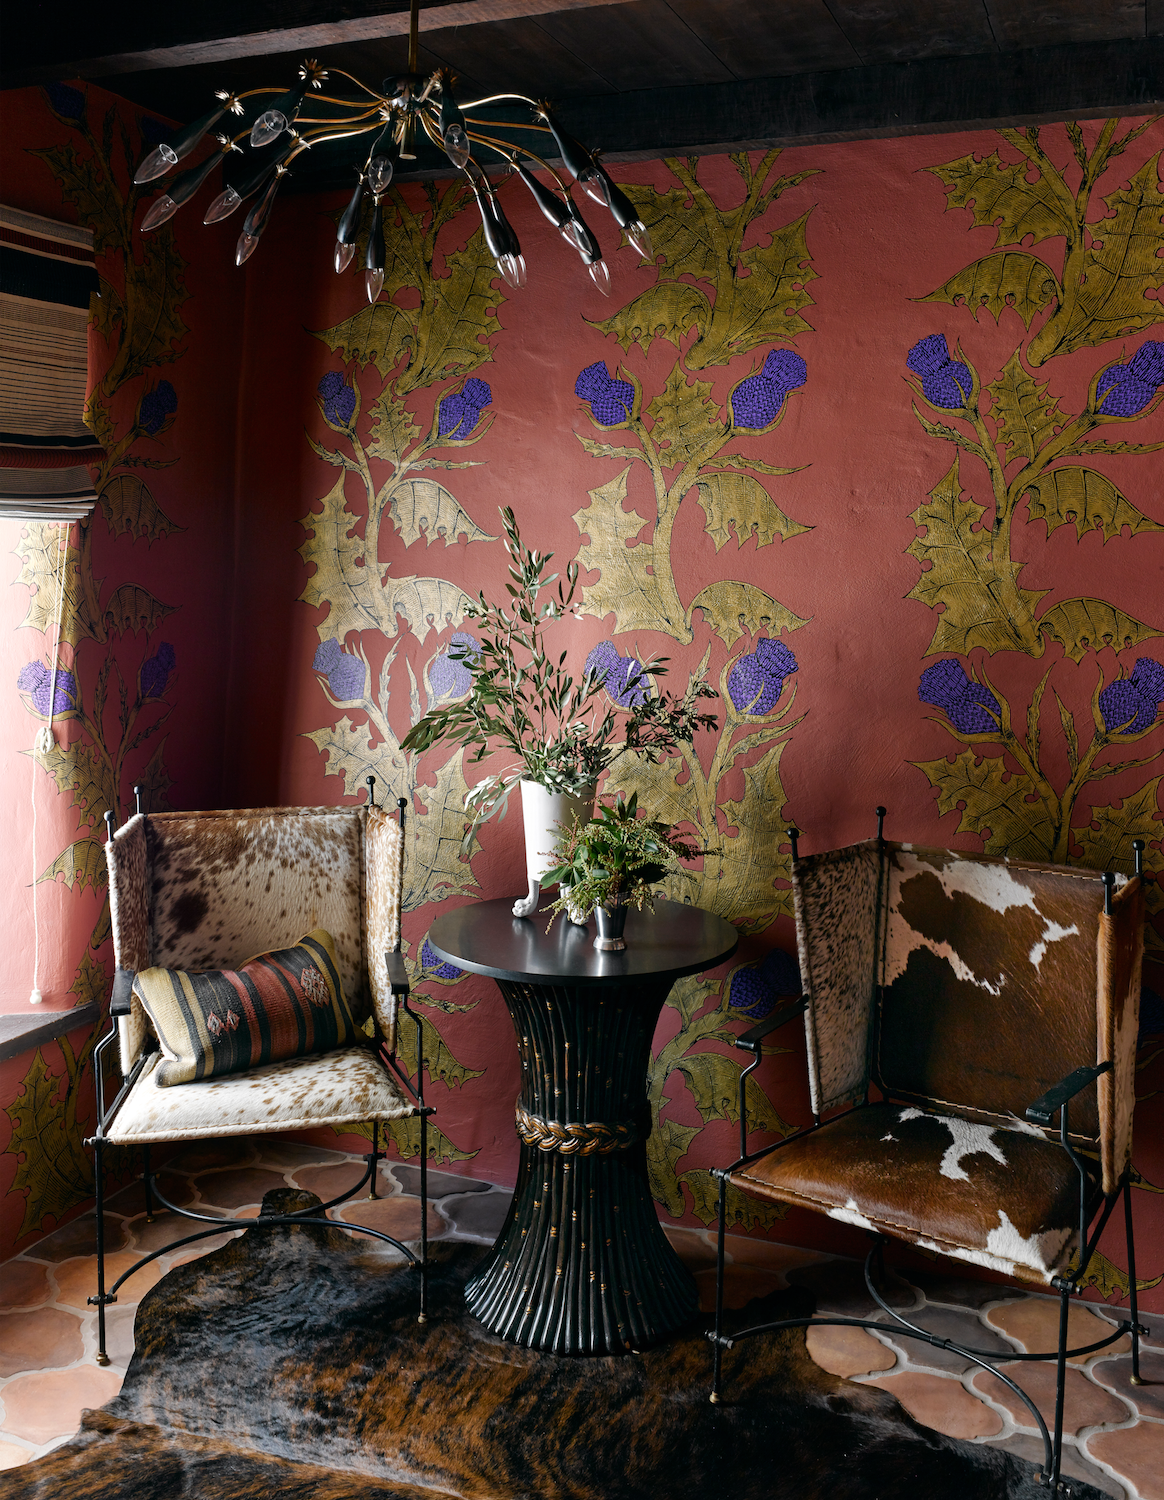 Chinoiserie in Collaboration with Ken Fulk Inc., 2014  Painted in Acrylic  Sonoma, California